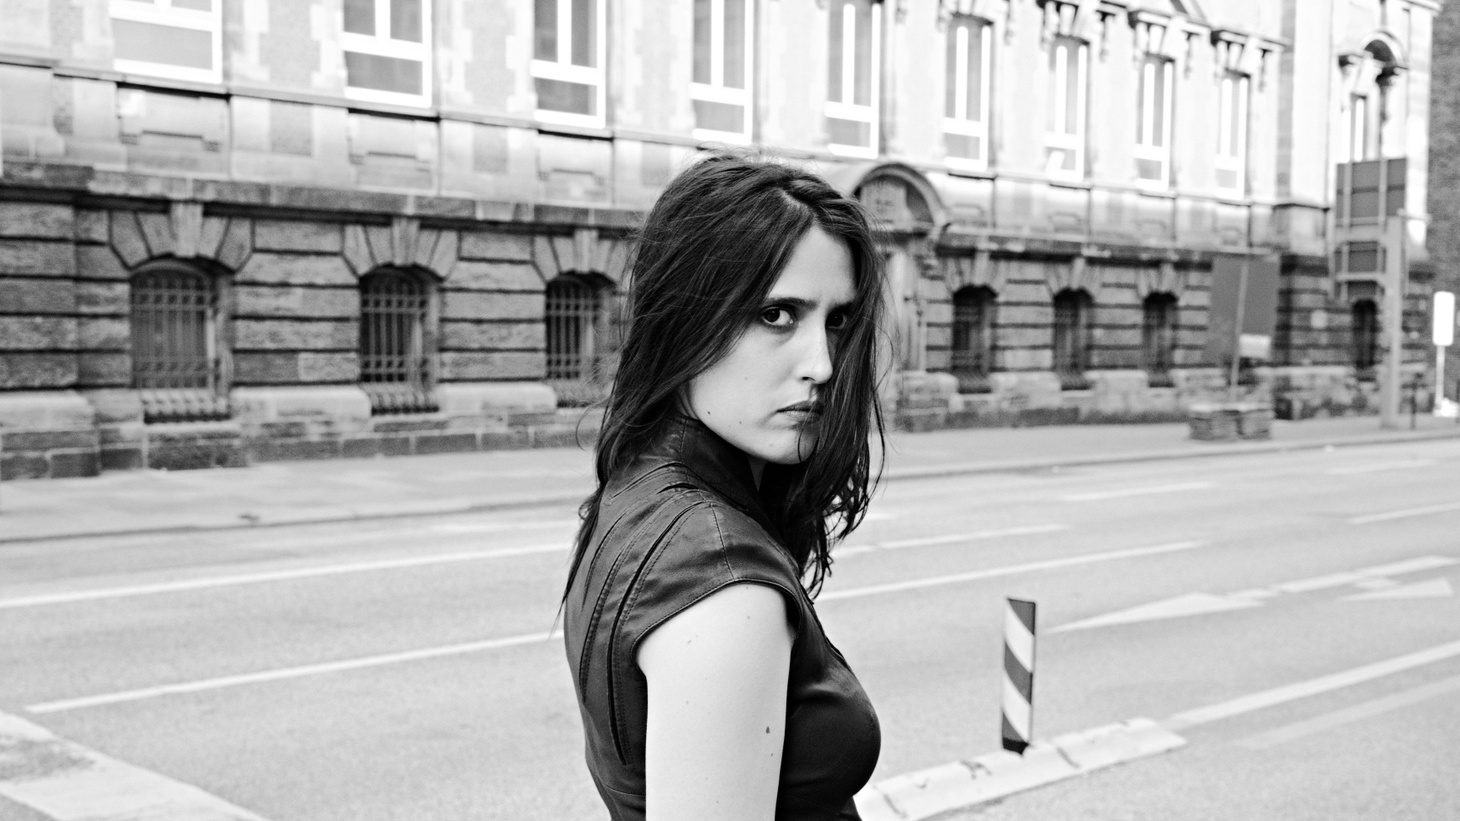 Hailing from Hamburg, Germany, Helena Hauff is a well-known DJ specializing in stripped-down techno that's strictly analog. Her new album fulfills the task at hand, as she jams on her machines to create a powerful sound.